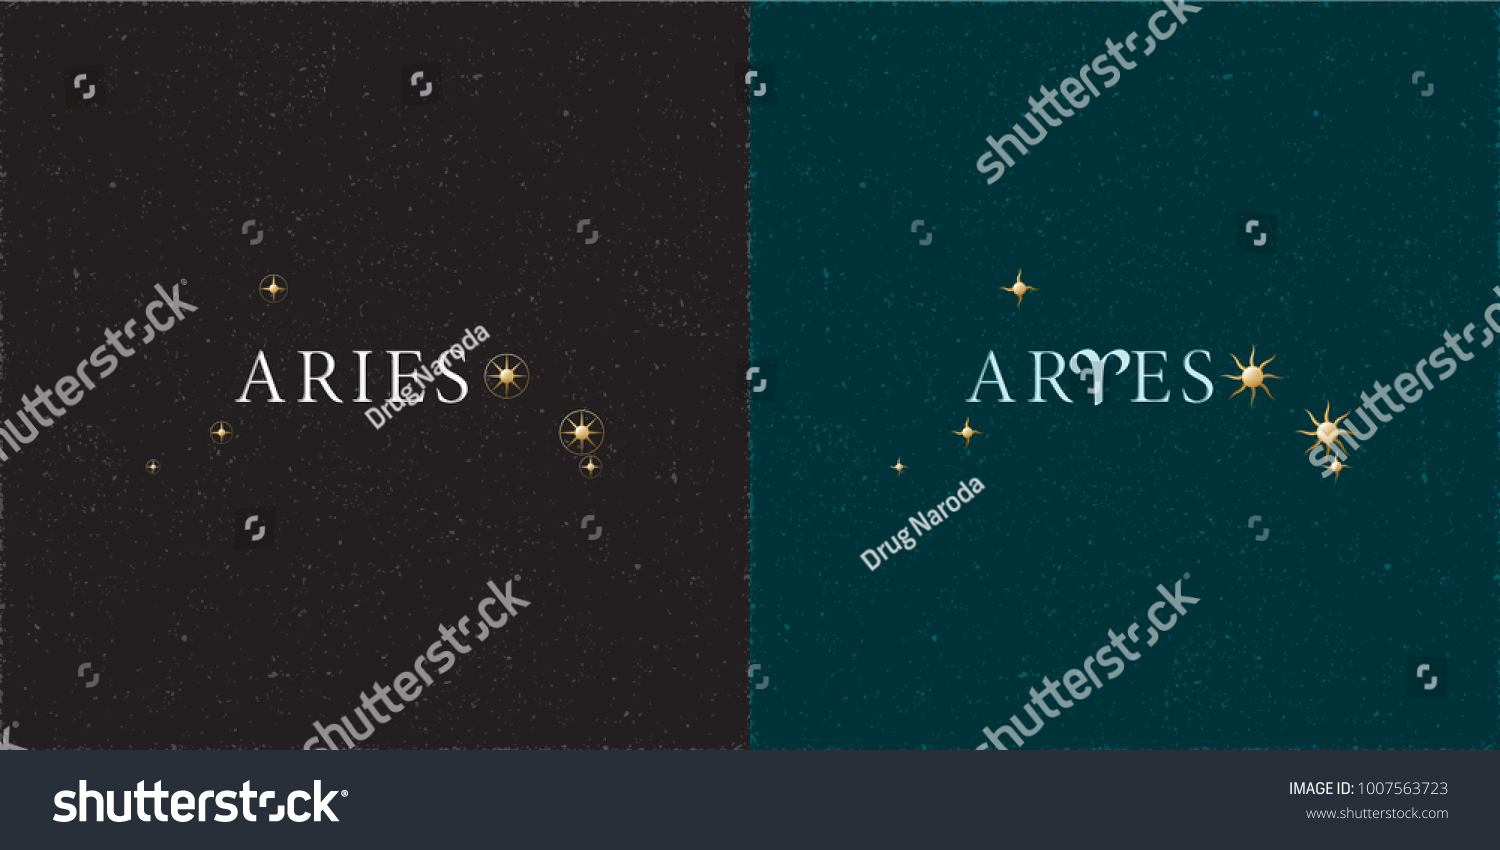 Zodiac constellation aries chiseled stars logo stock vector zodiac constellation aries chiseled stars and logo lettering with aries zodiac sign symbol white and biocorpaavc Gallery